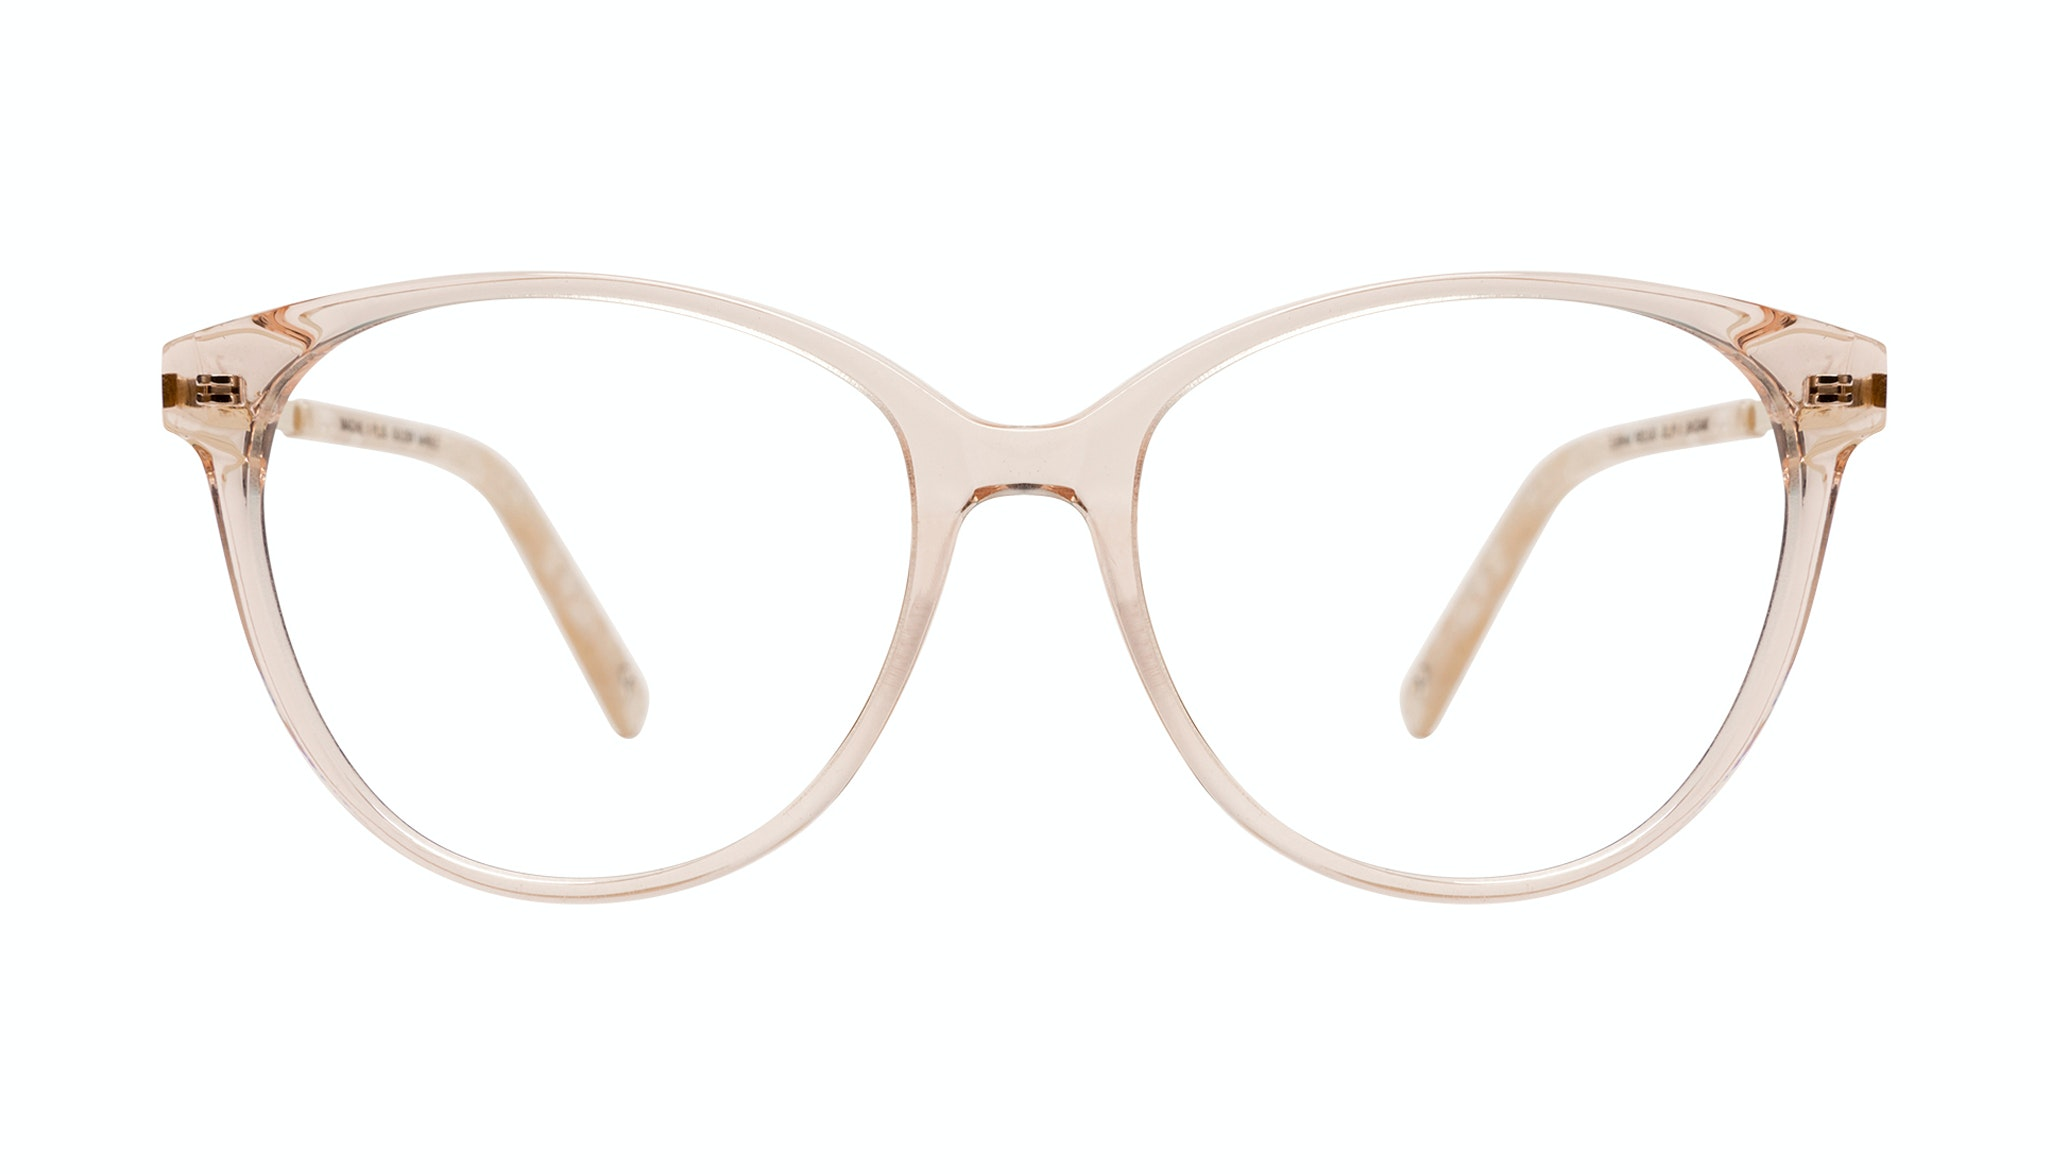 Affordable Fashion Glasses Round Eyeglasses Women Imagine II Plus Golden Marble